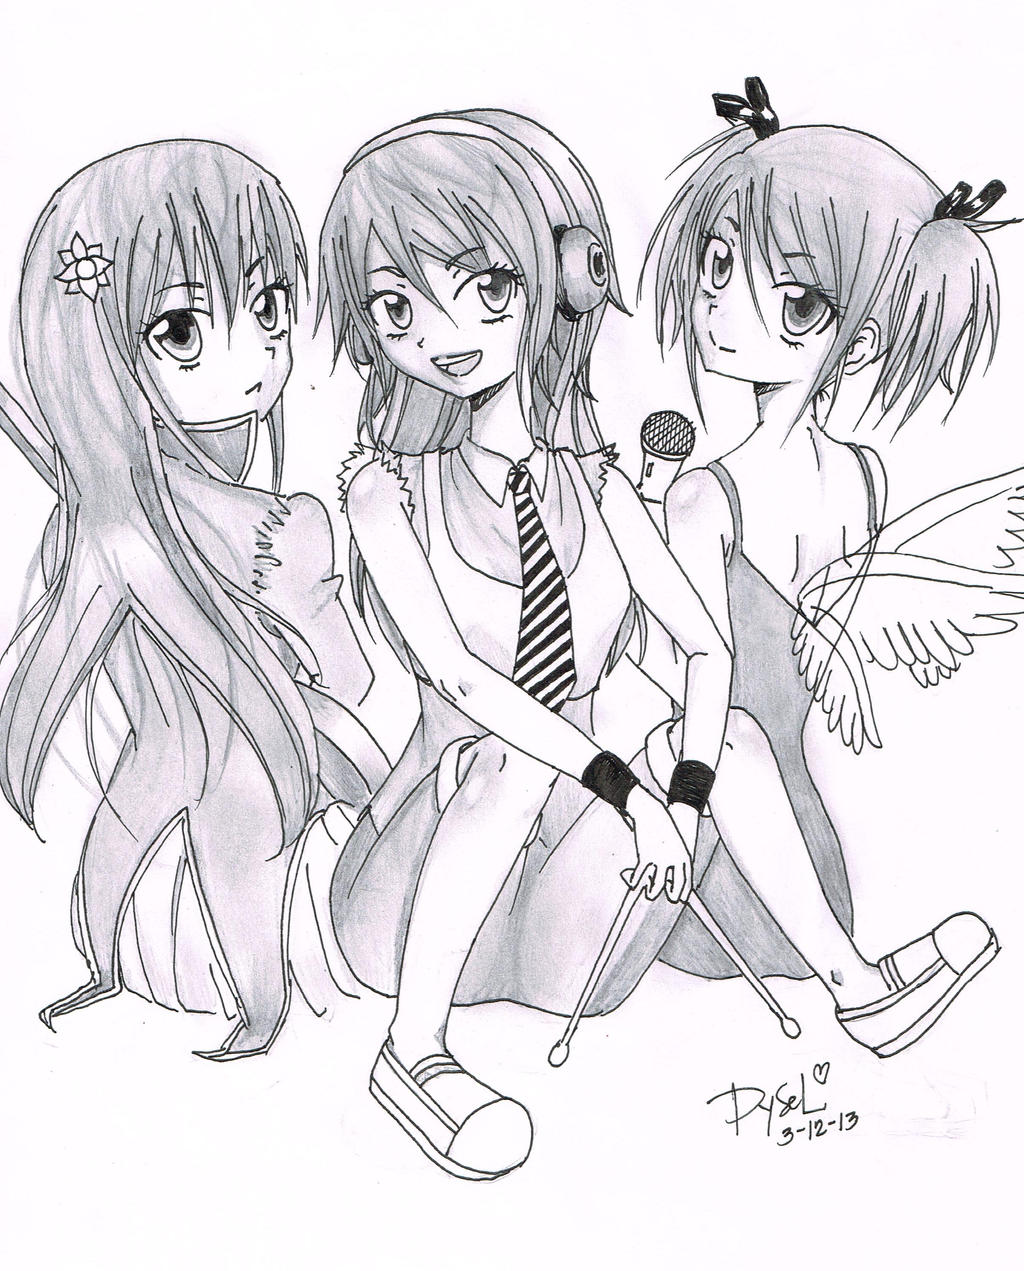 Anime Girls Band Members By Leseyd On DeviantArt